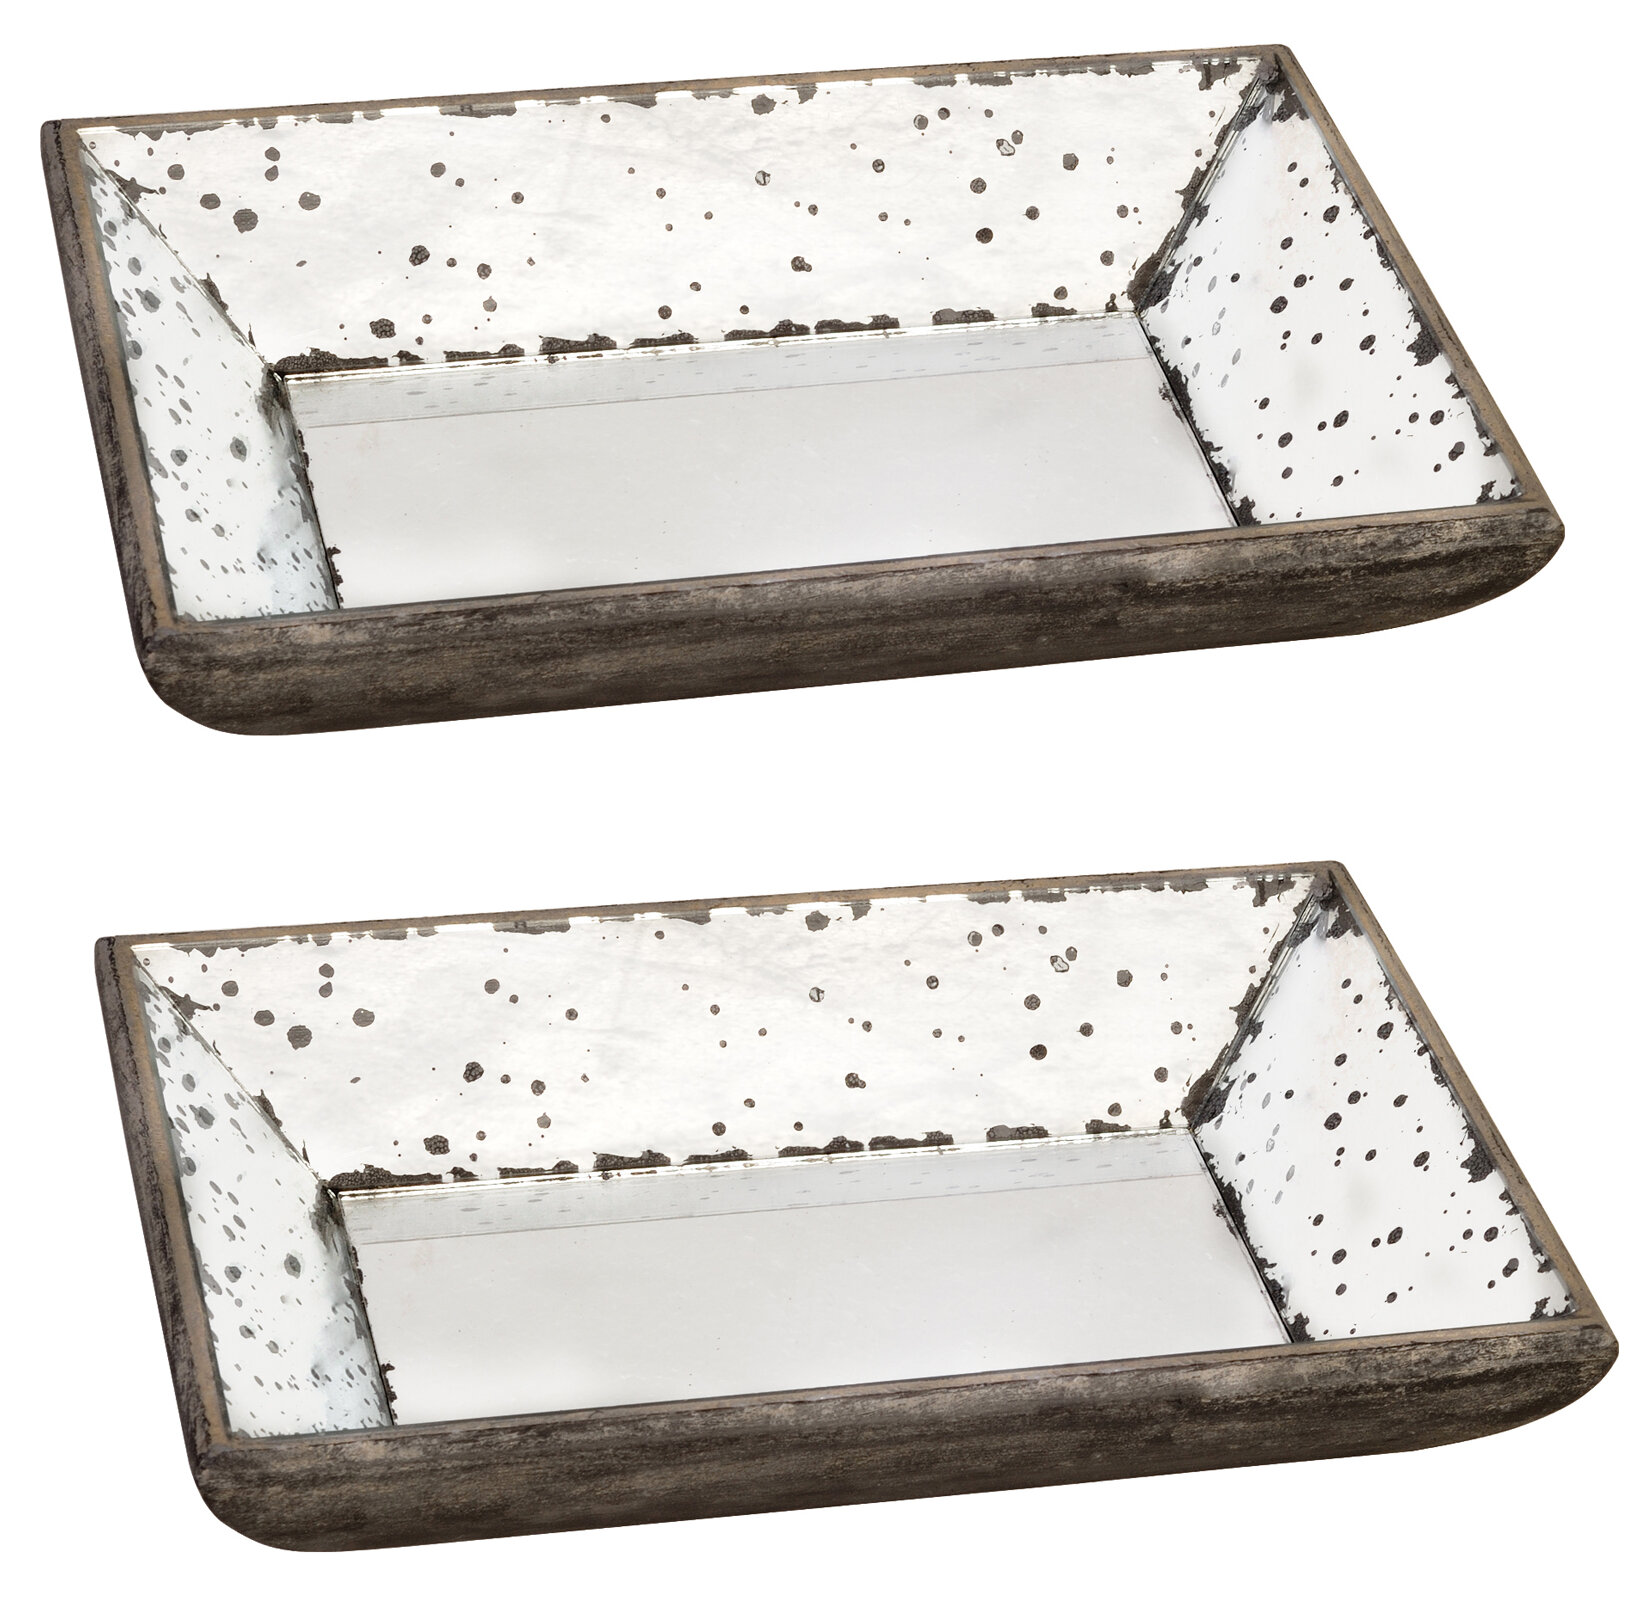 Gracie Oaks Lecompte Mirrored Glass Serving Tray Wayfair Ca